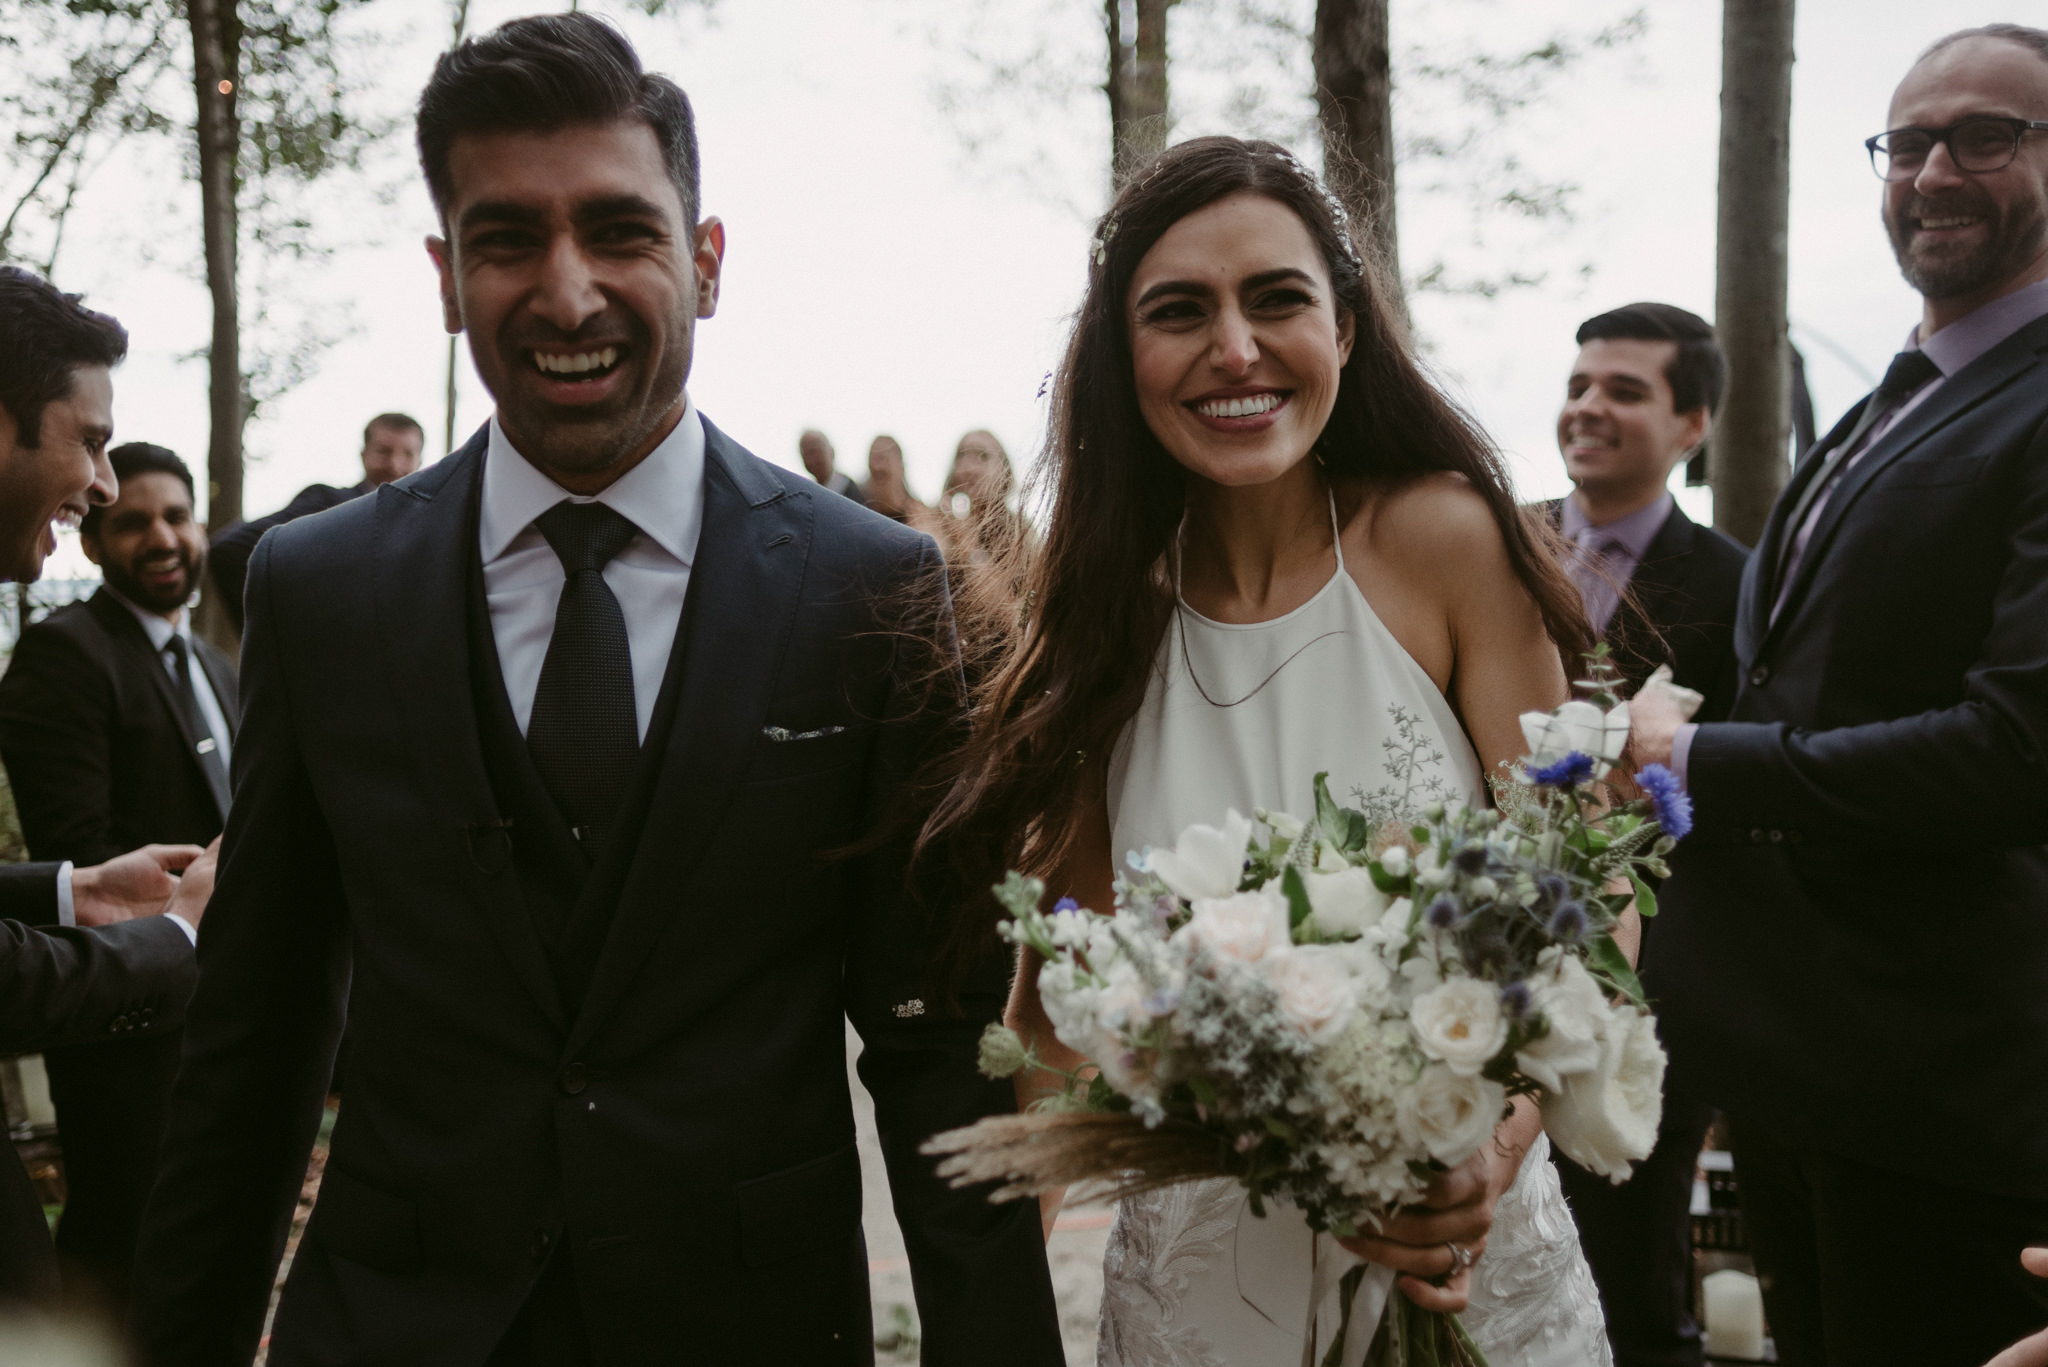 bride and groom showered with flowers during ceremony exit